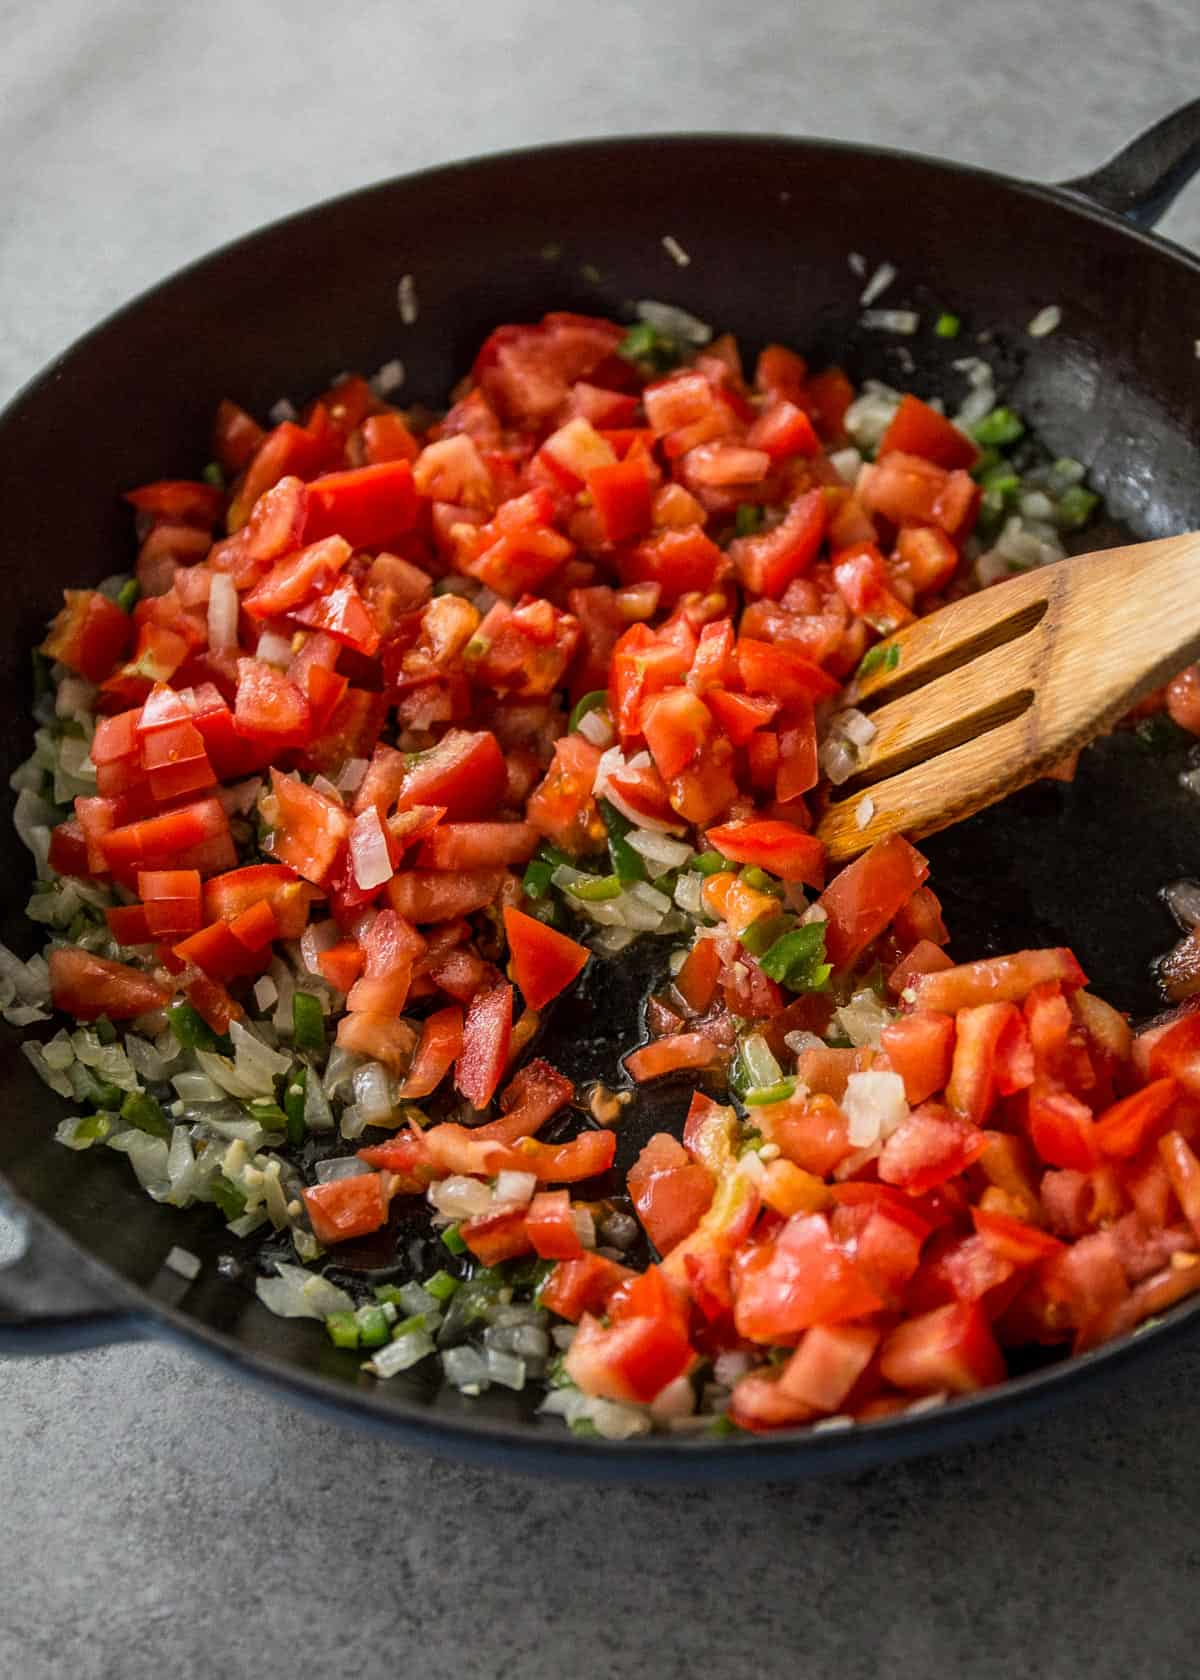 tomatoes and herbs in a cast iron skillet